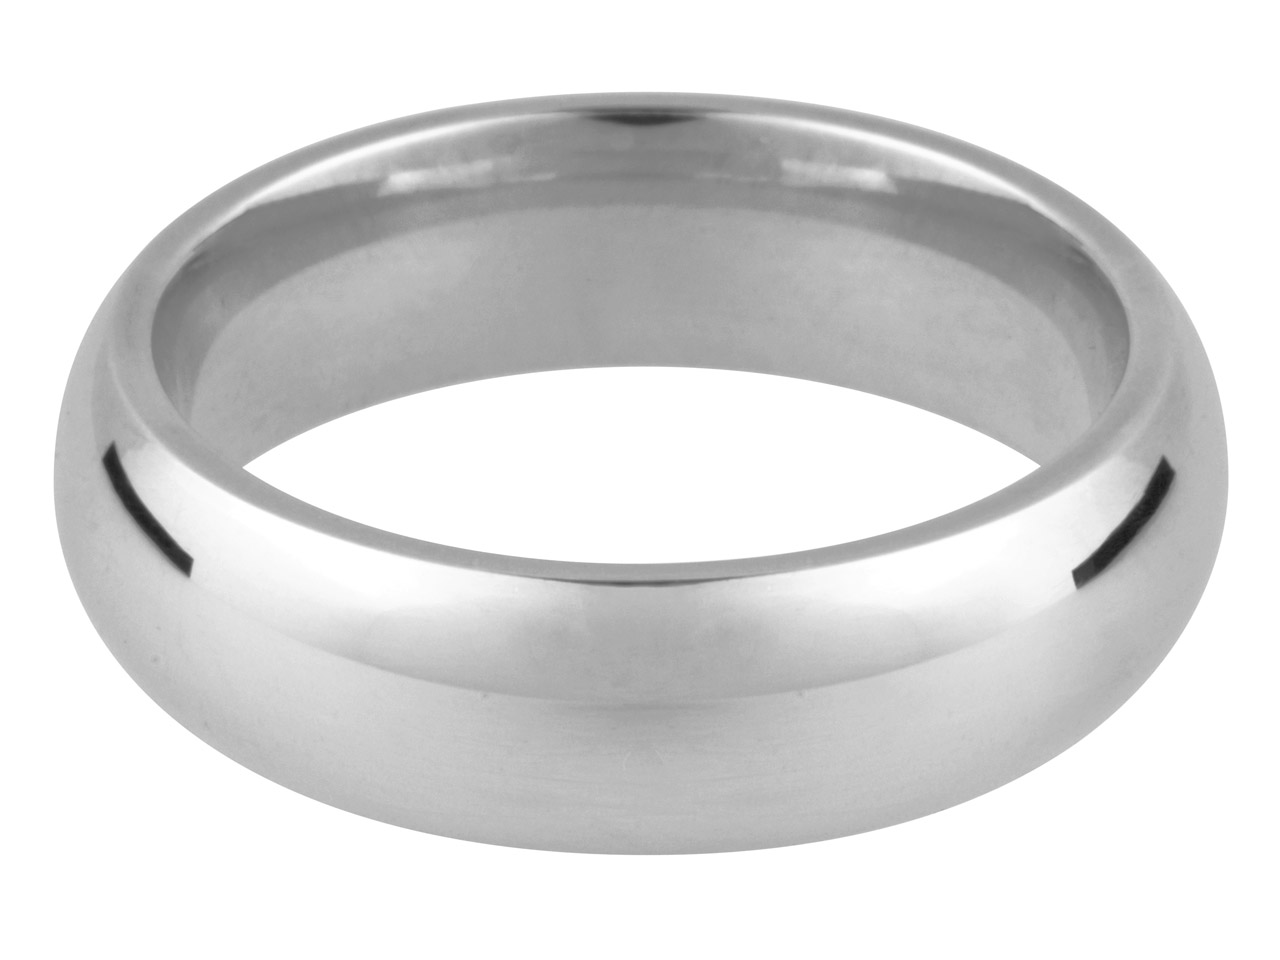 Silver Court Wedding Ring 2.0mm O   2.0gms Heavy Weight Hallmarked Wall Thickness 1.66mm